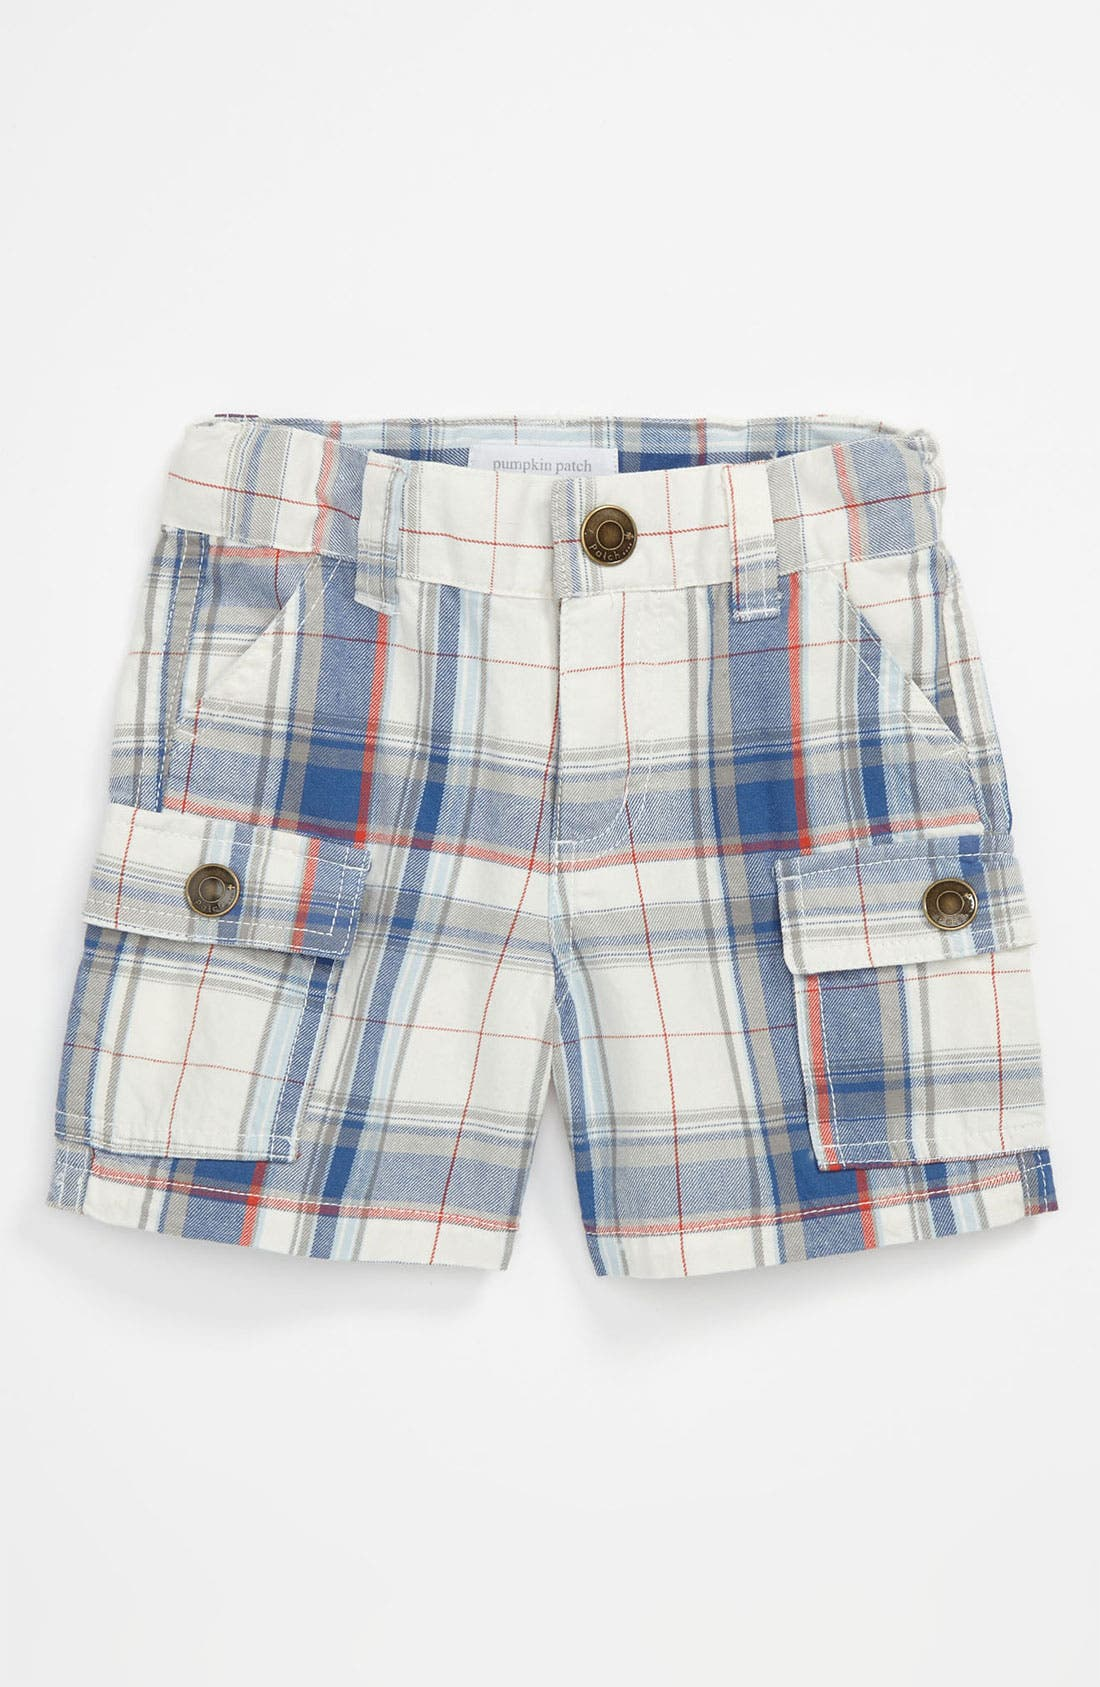 Alternate Image 1 Selected - Pumpkin Patch Plaid Cargo Shorts (Infant)